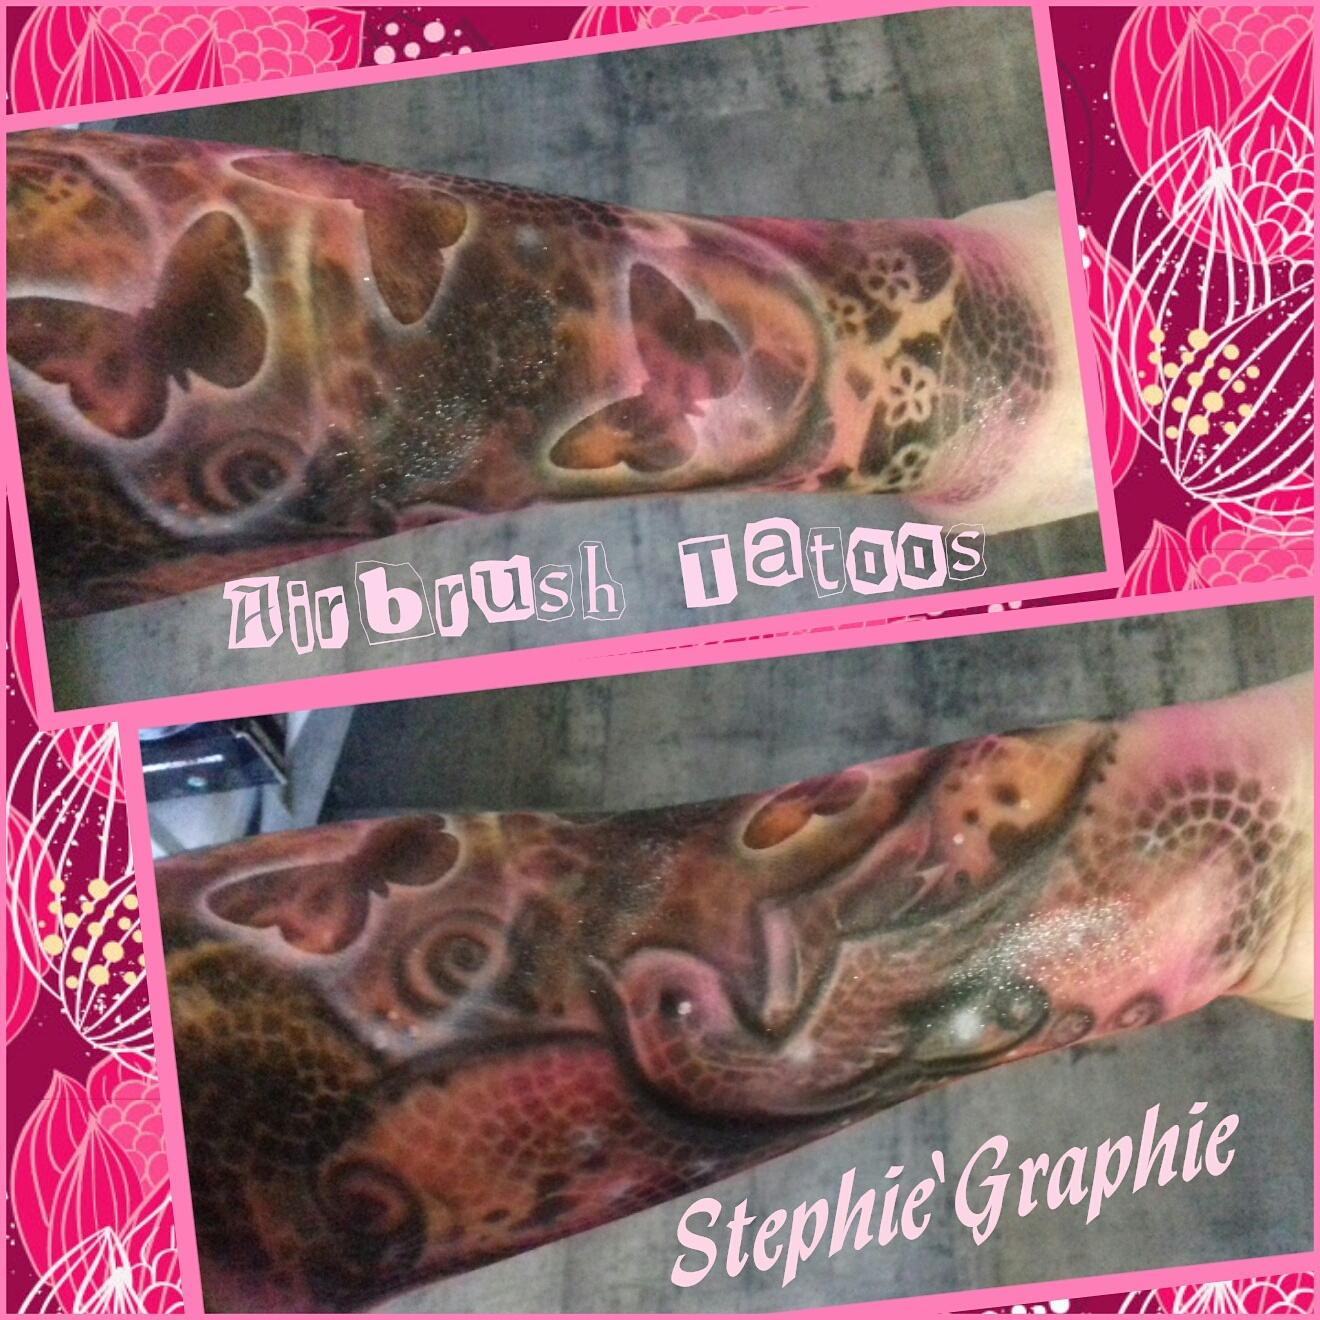 Airbrush tatoo